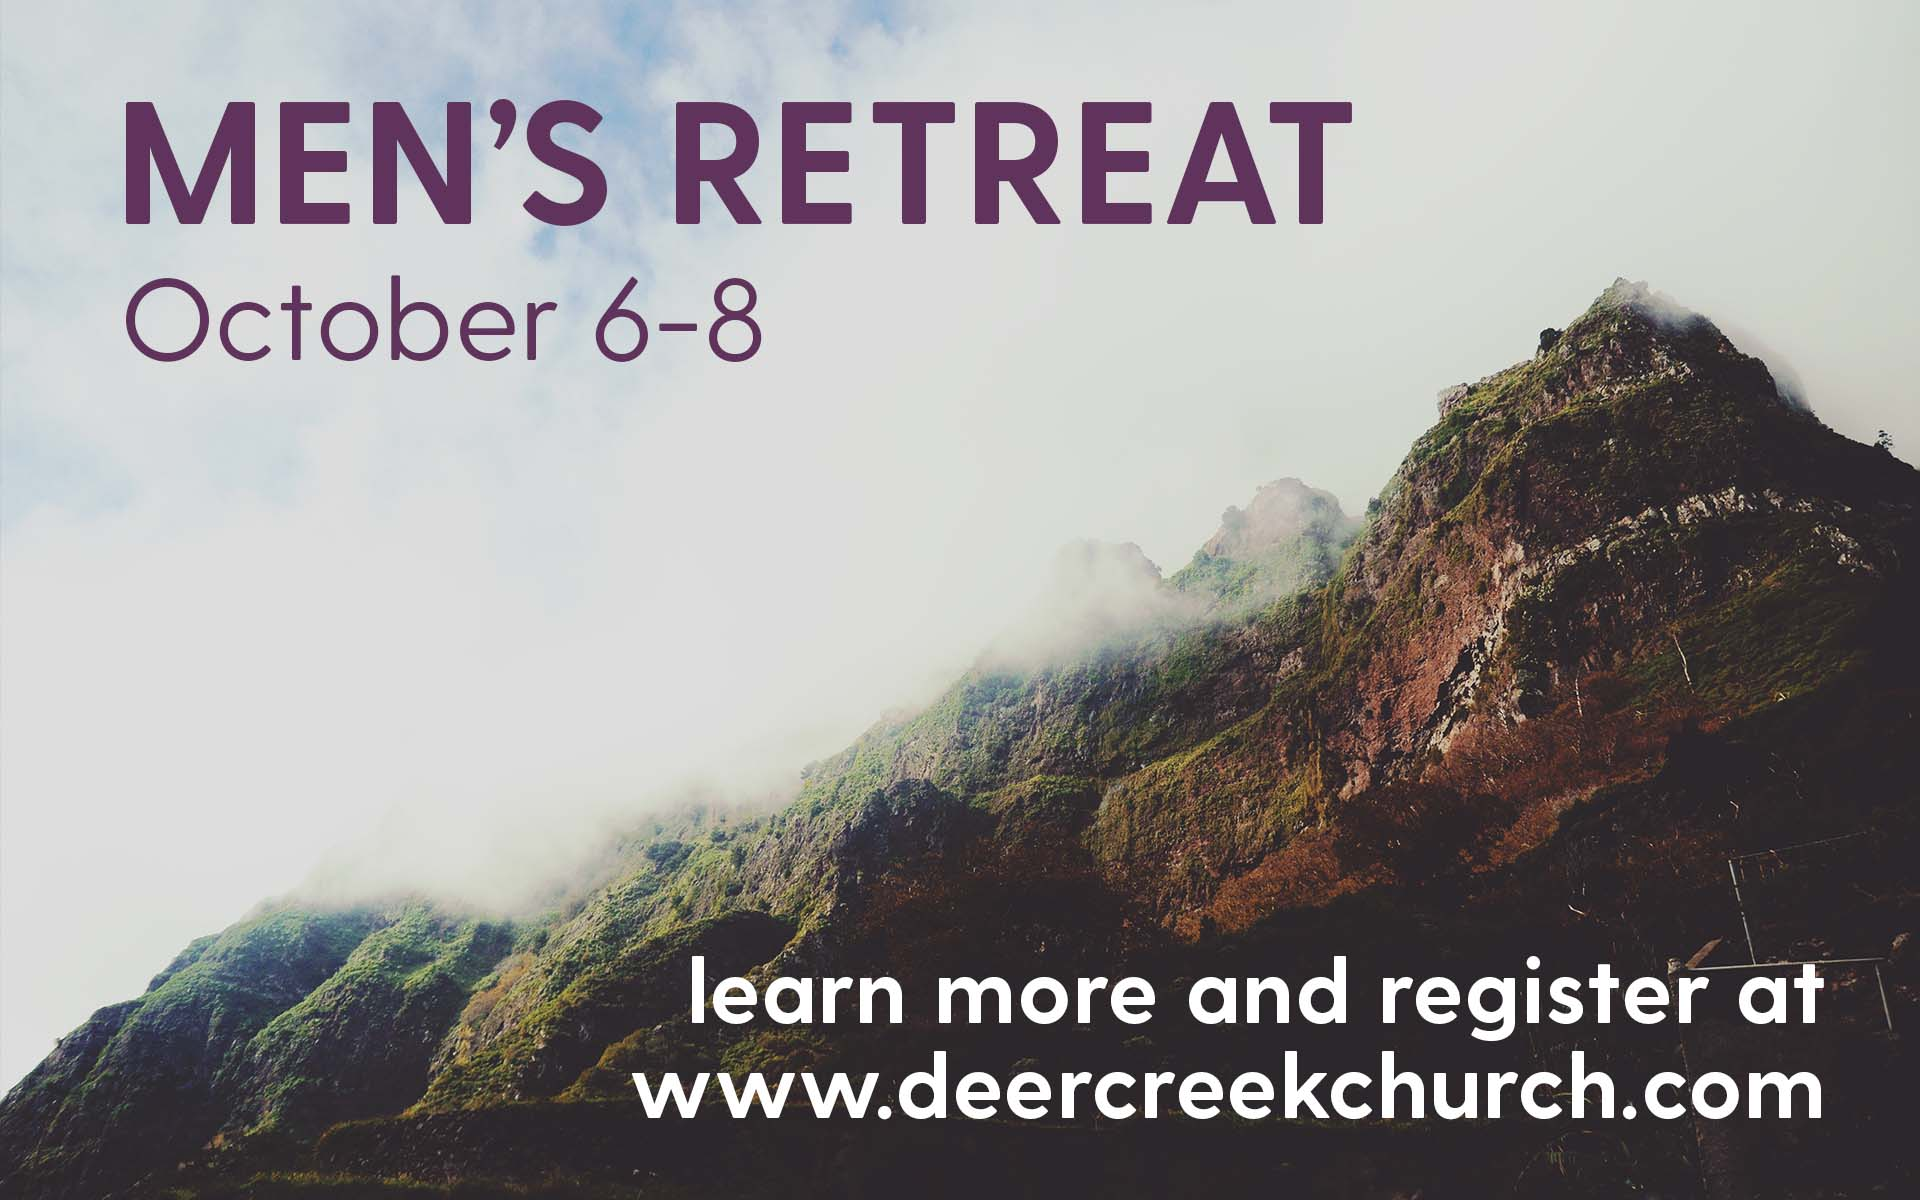 Men s retreat